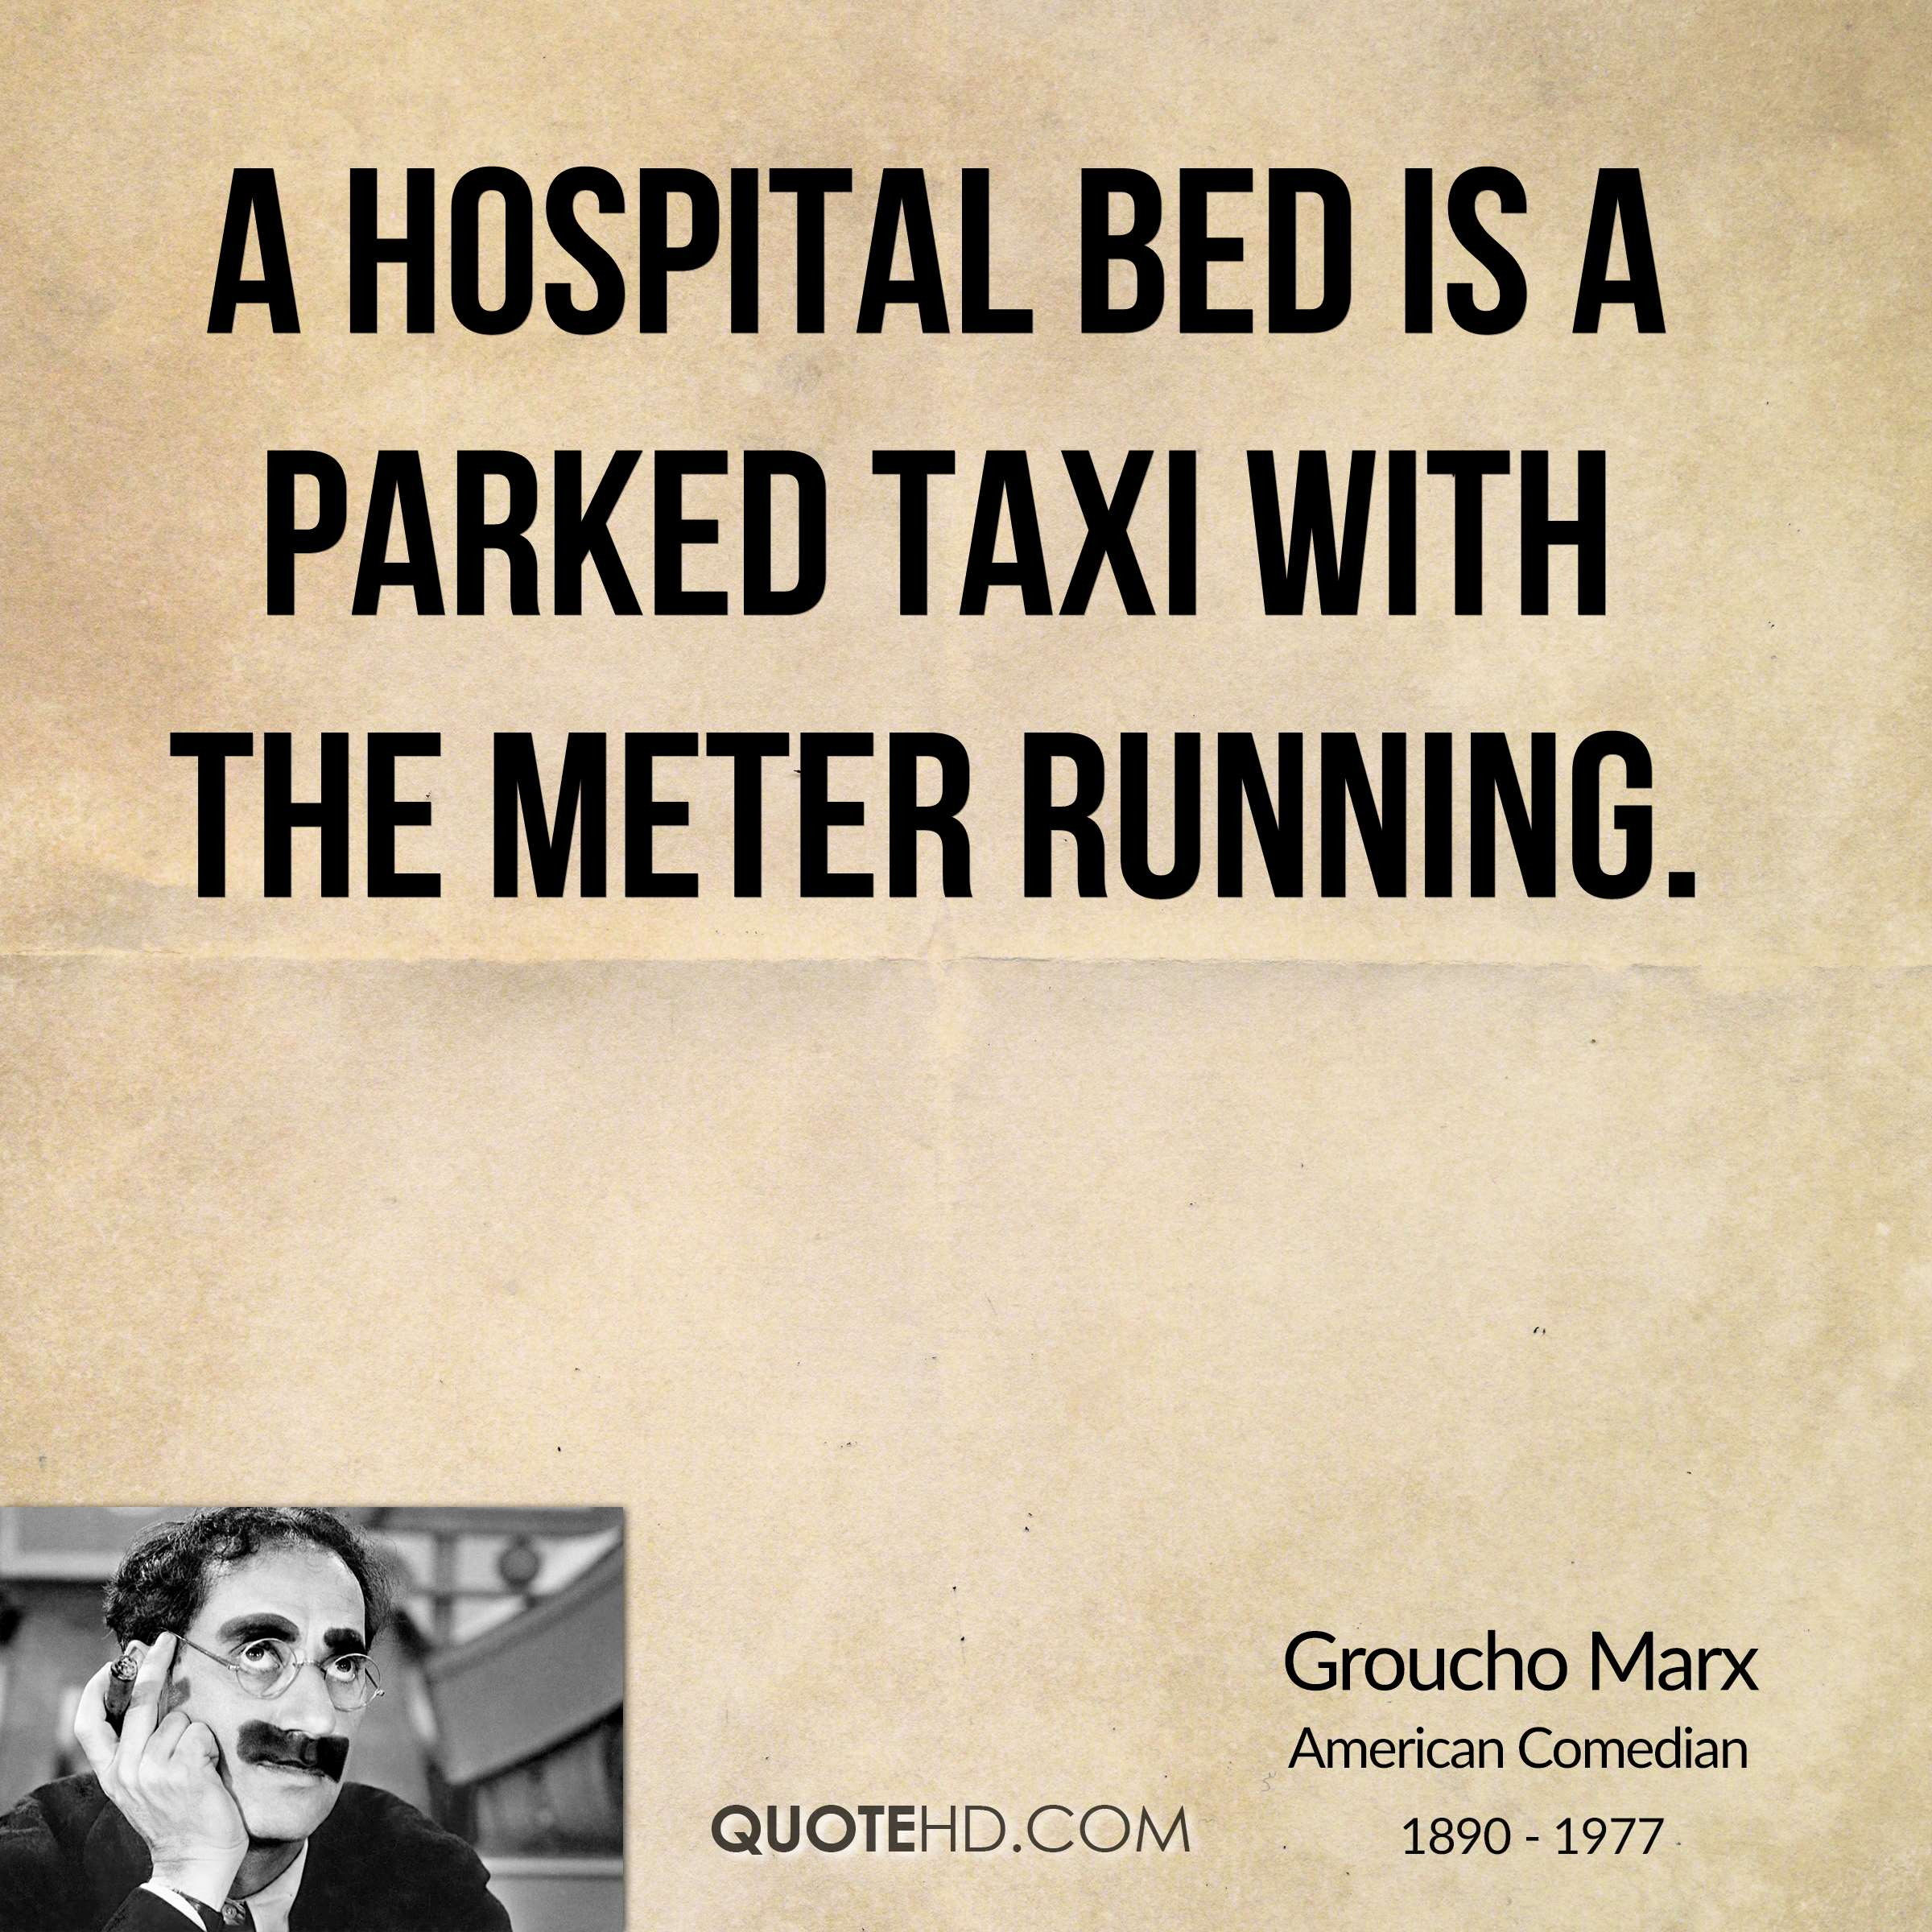 A hospital bed is a parked taxi with the meter running.